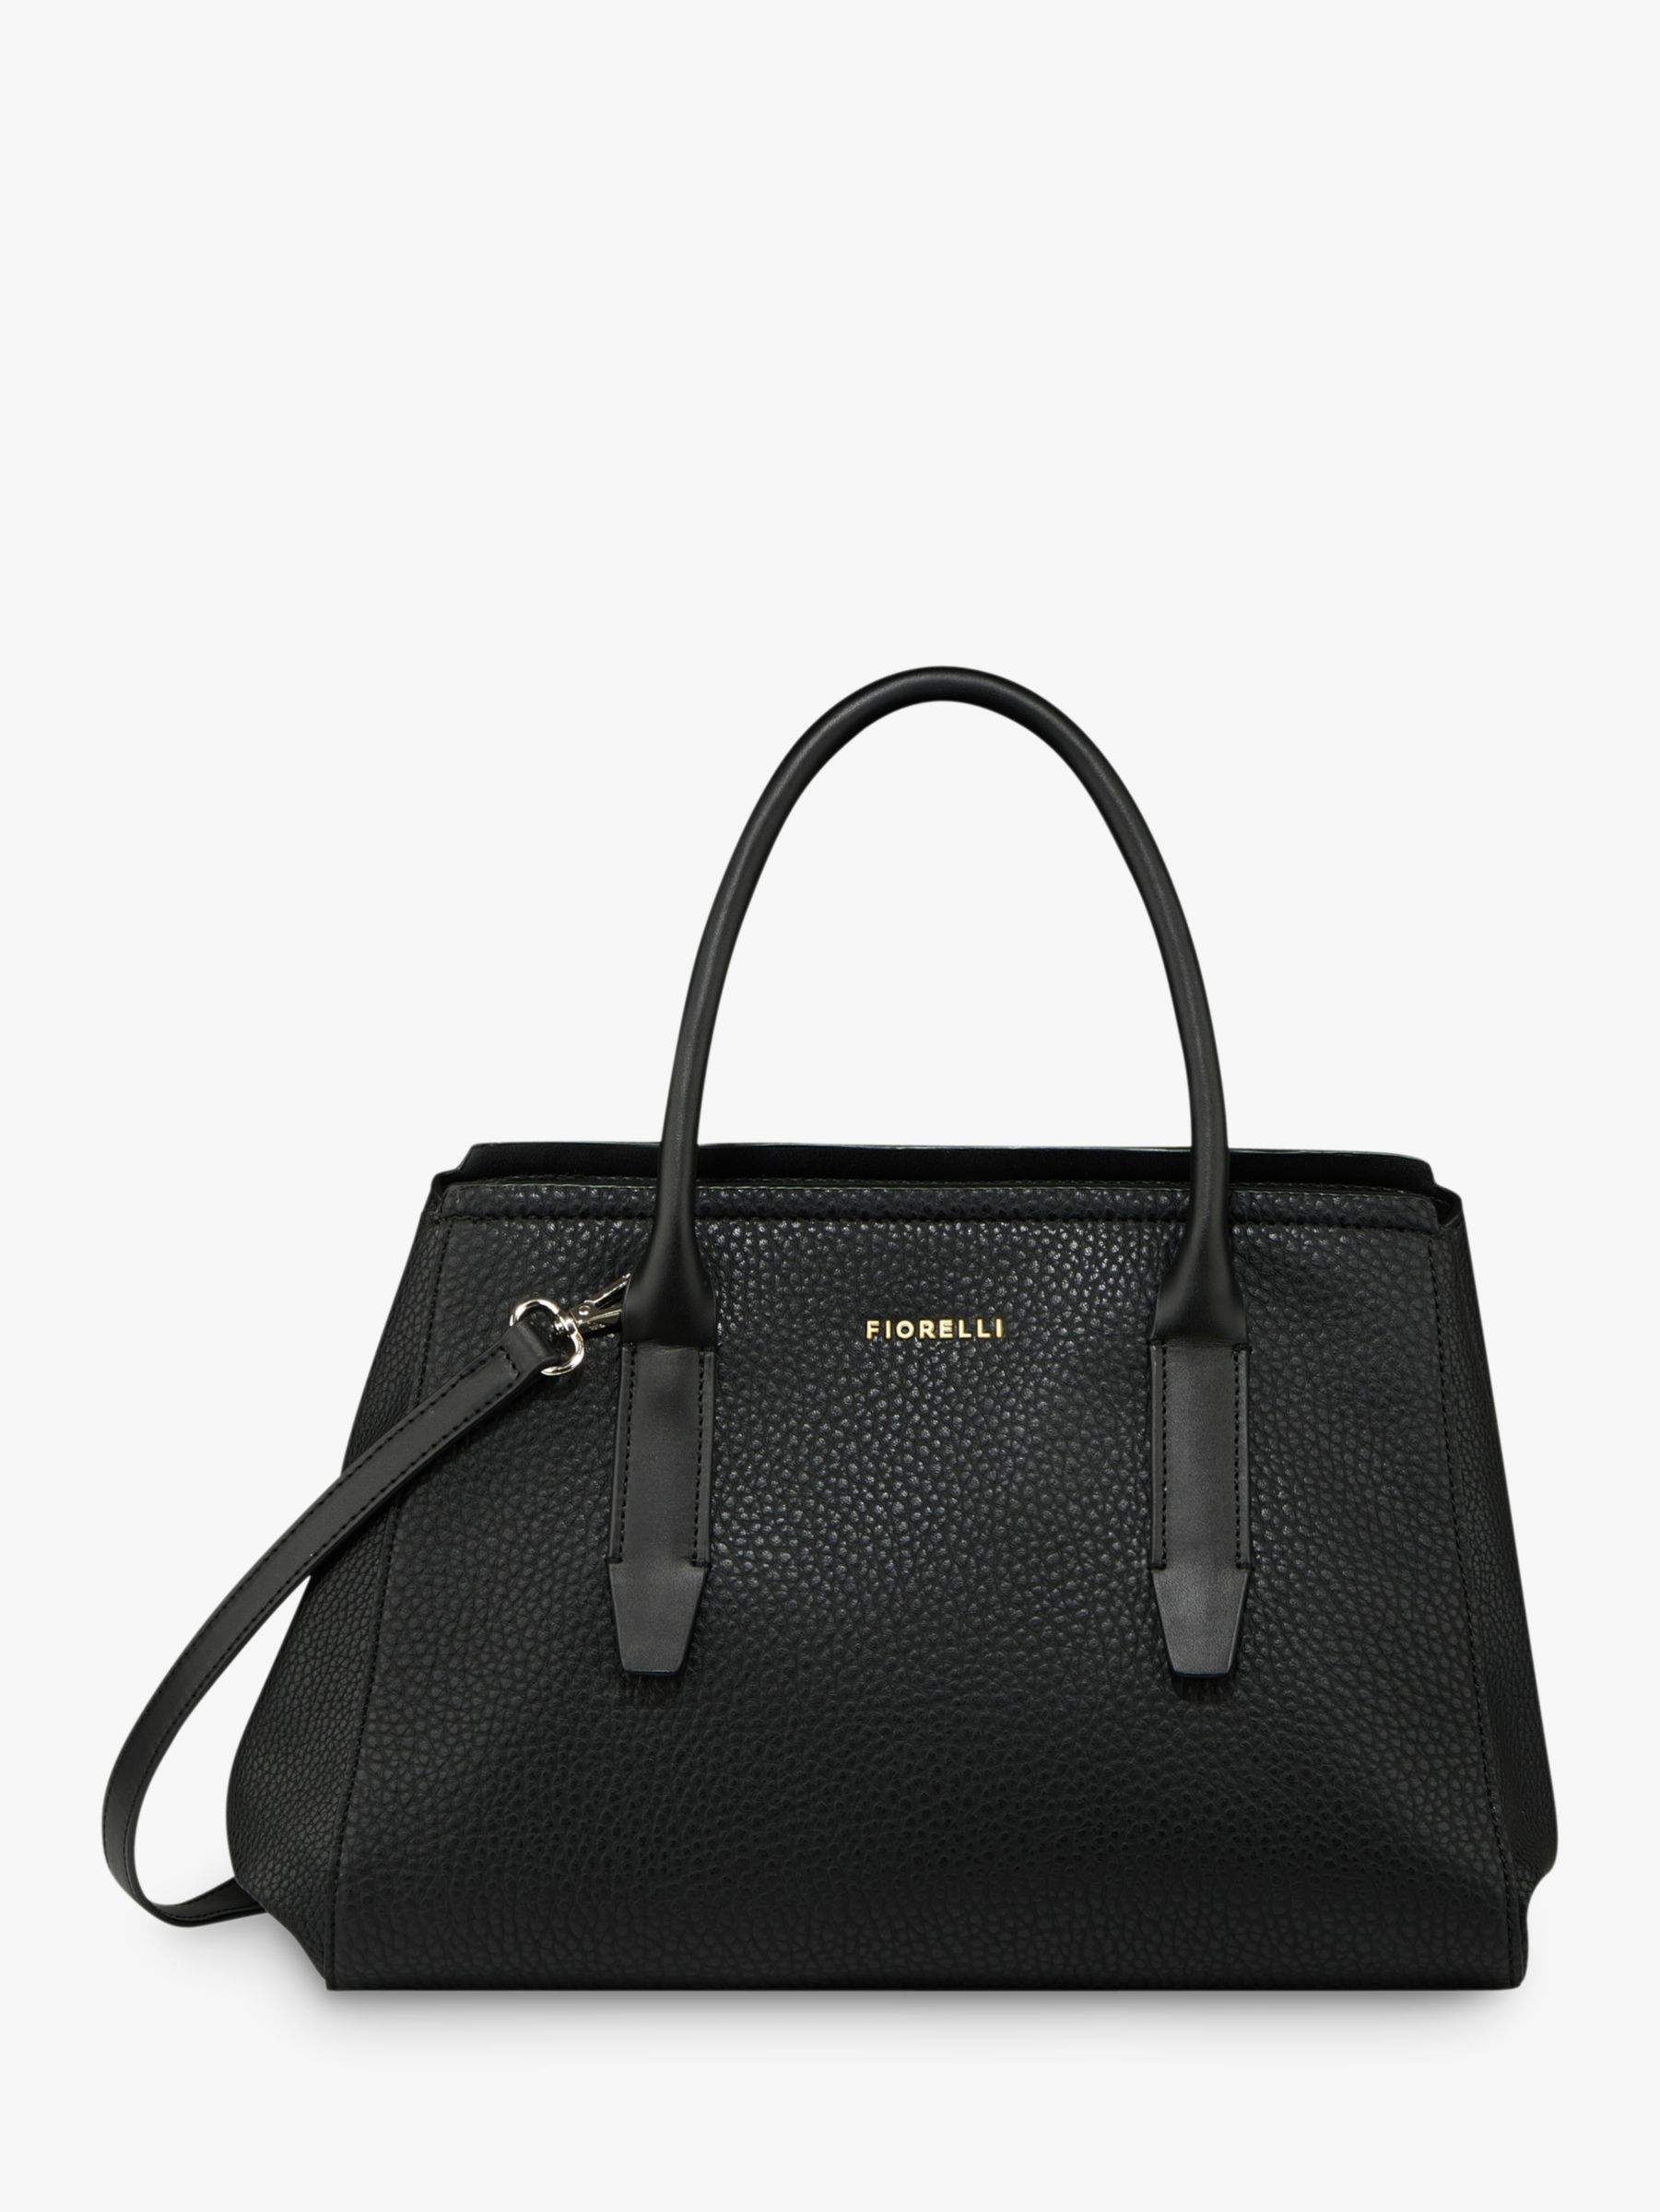 Fiorelli Fiorelli Kim Grab Shoulder Bag, Black